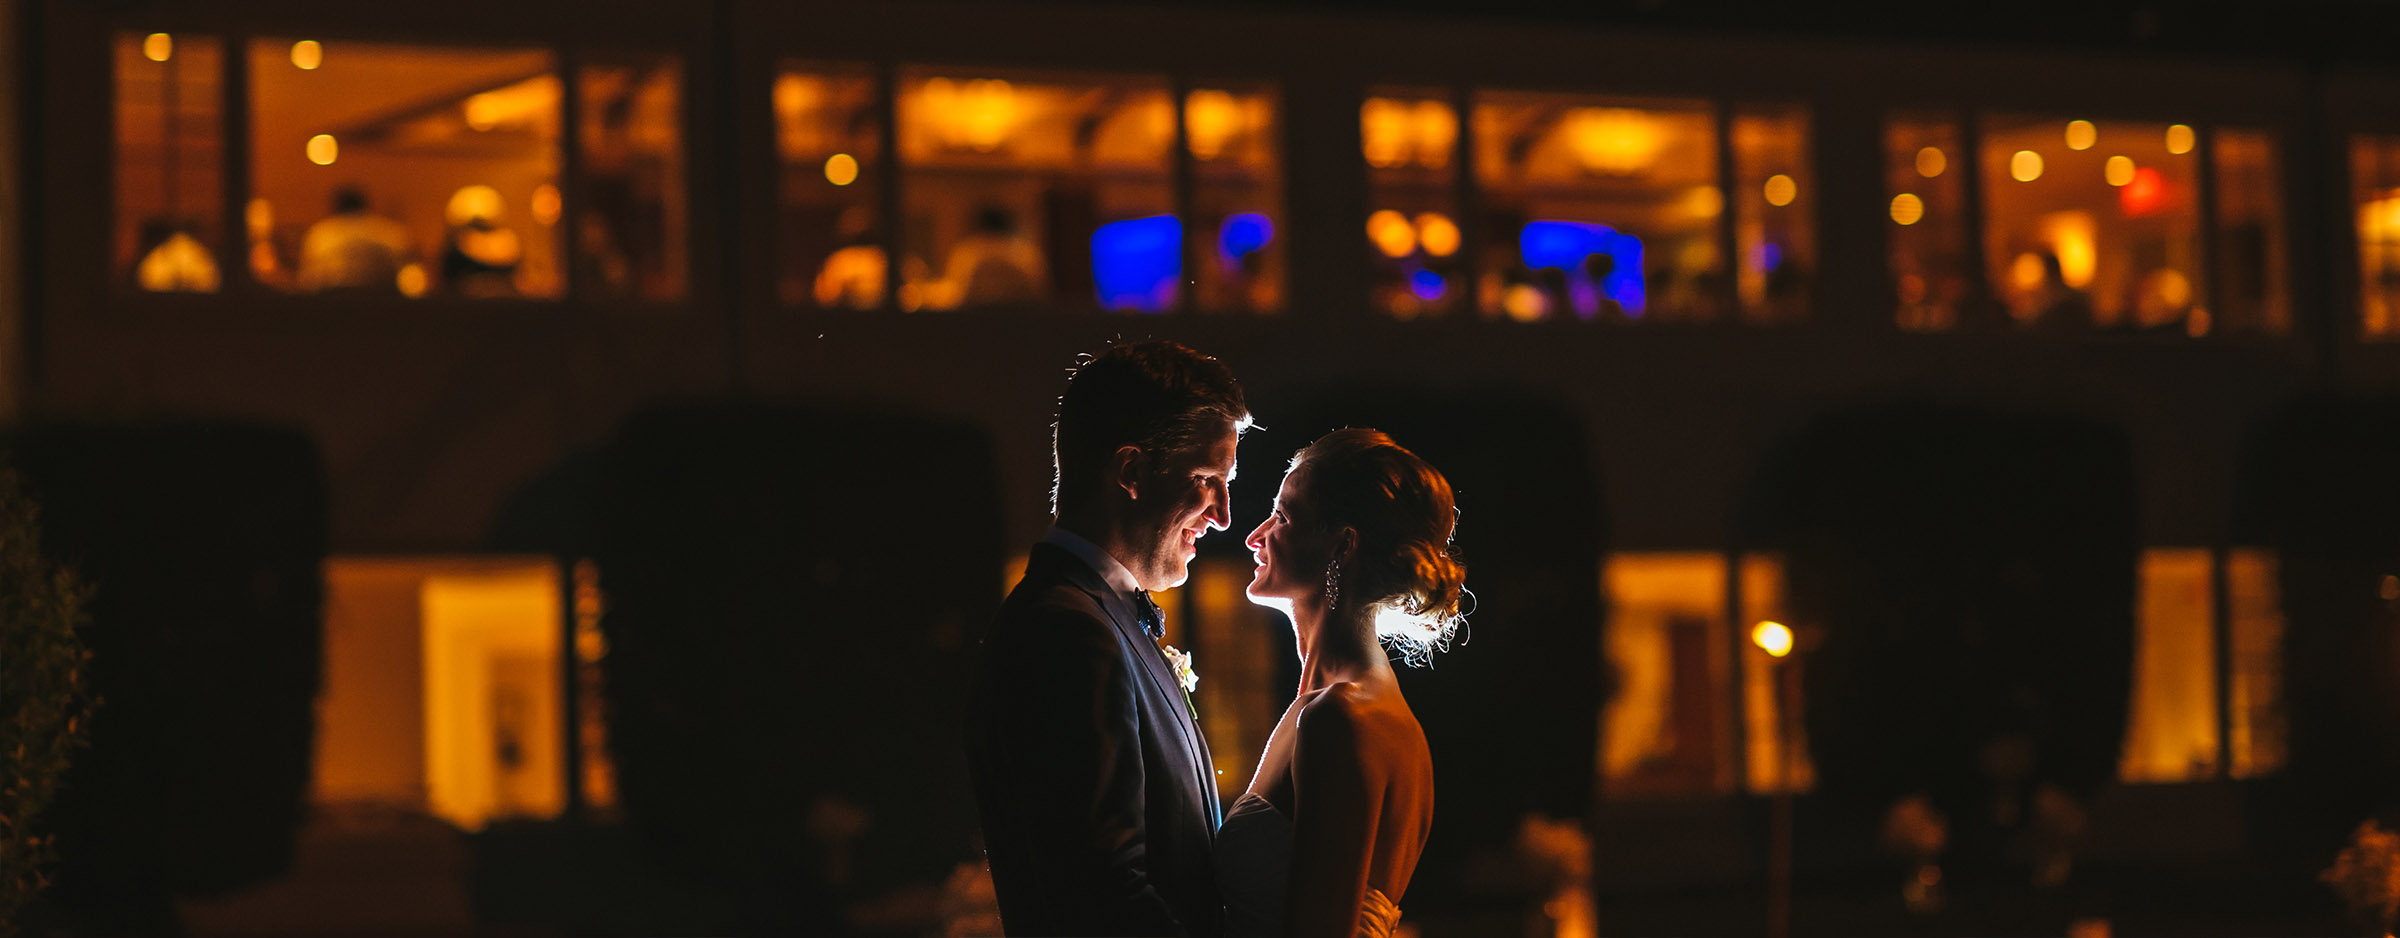 Lizzie-Ted-Stamford-Yacht-Club-Wedding-0001